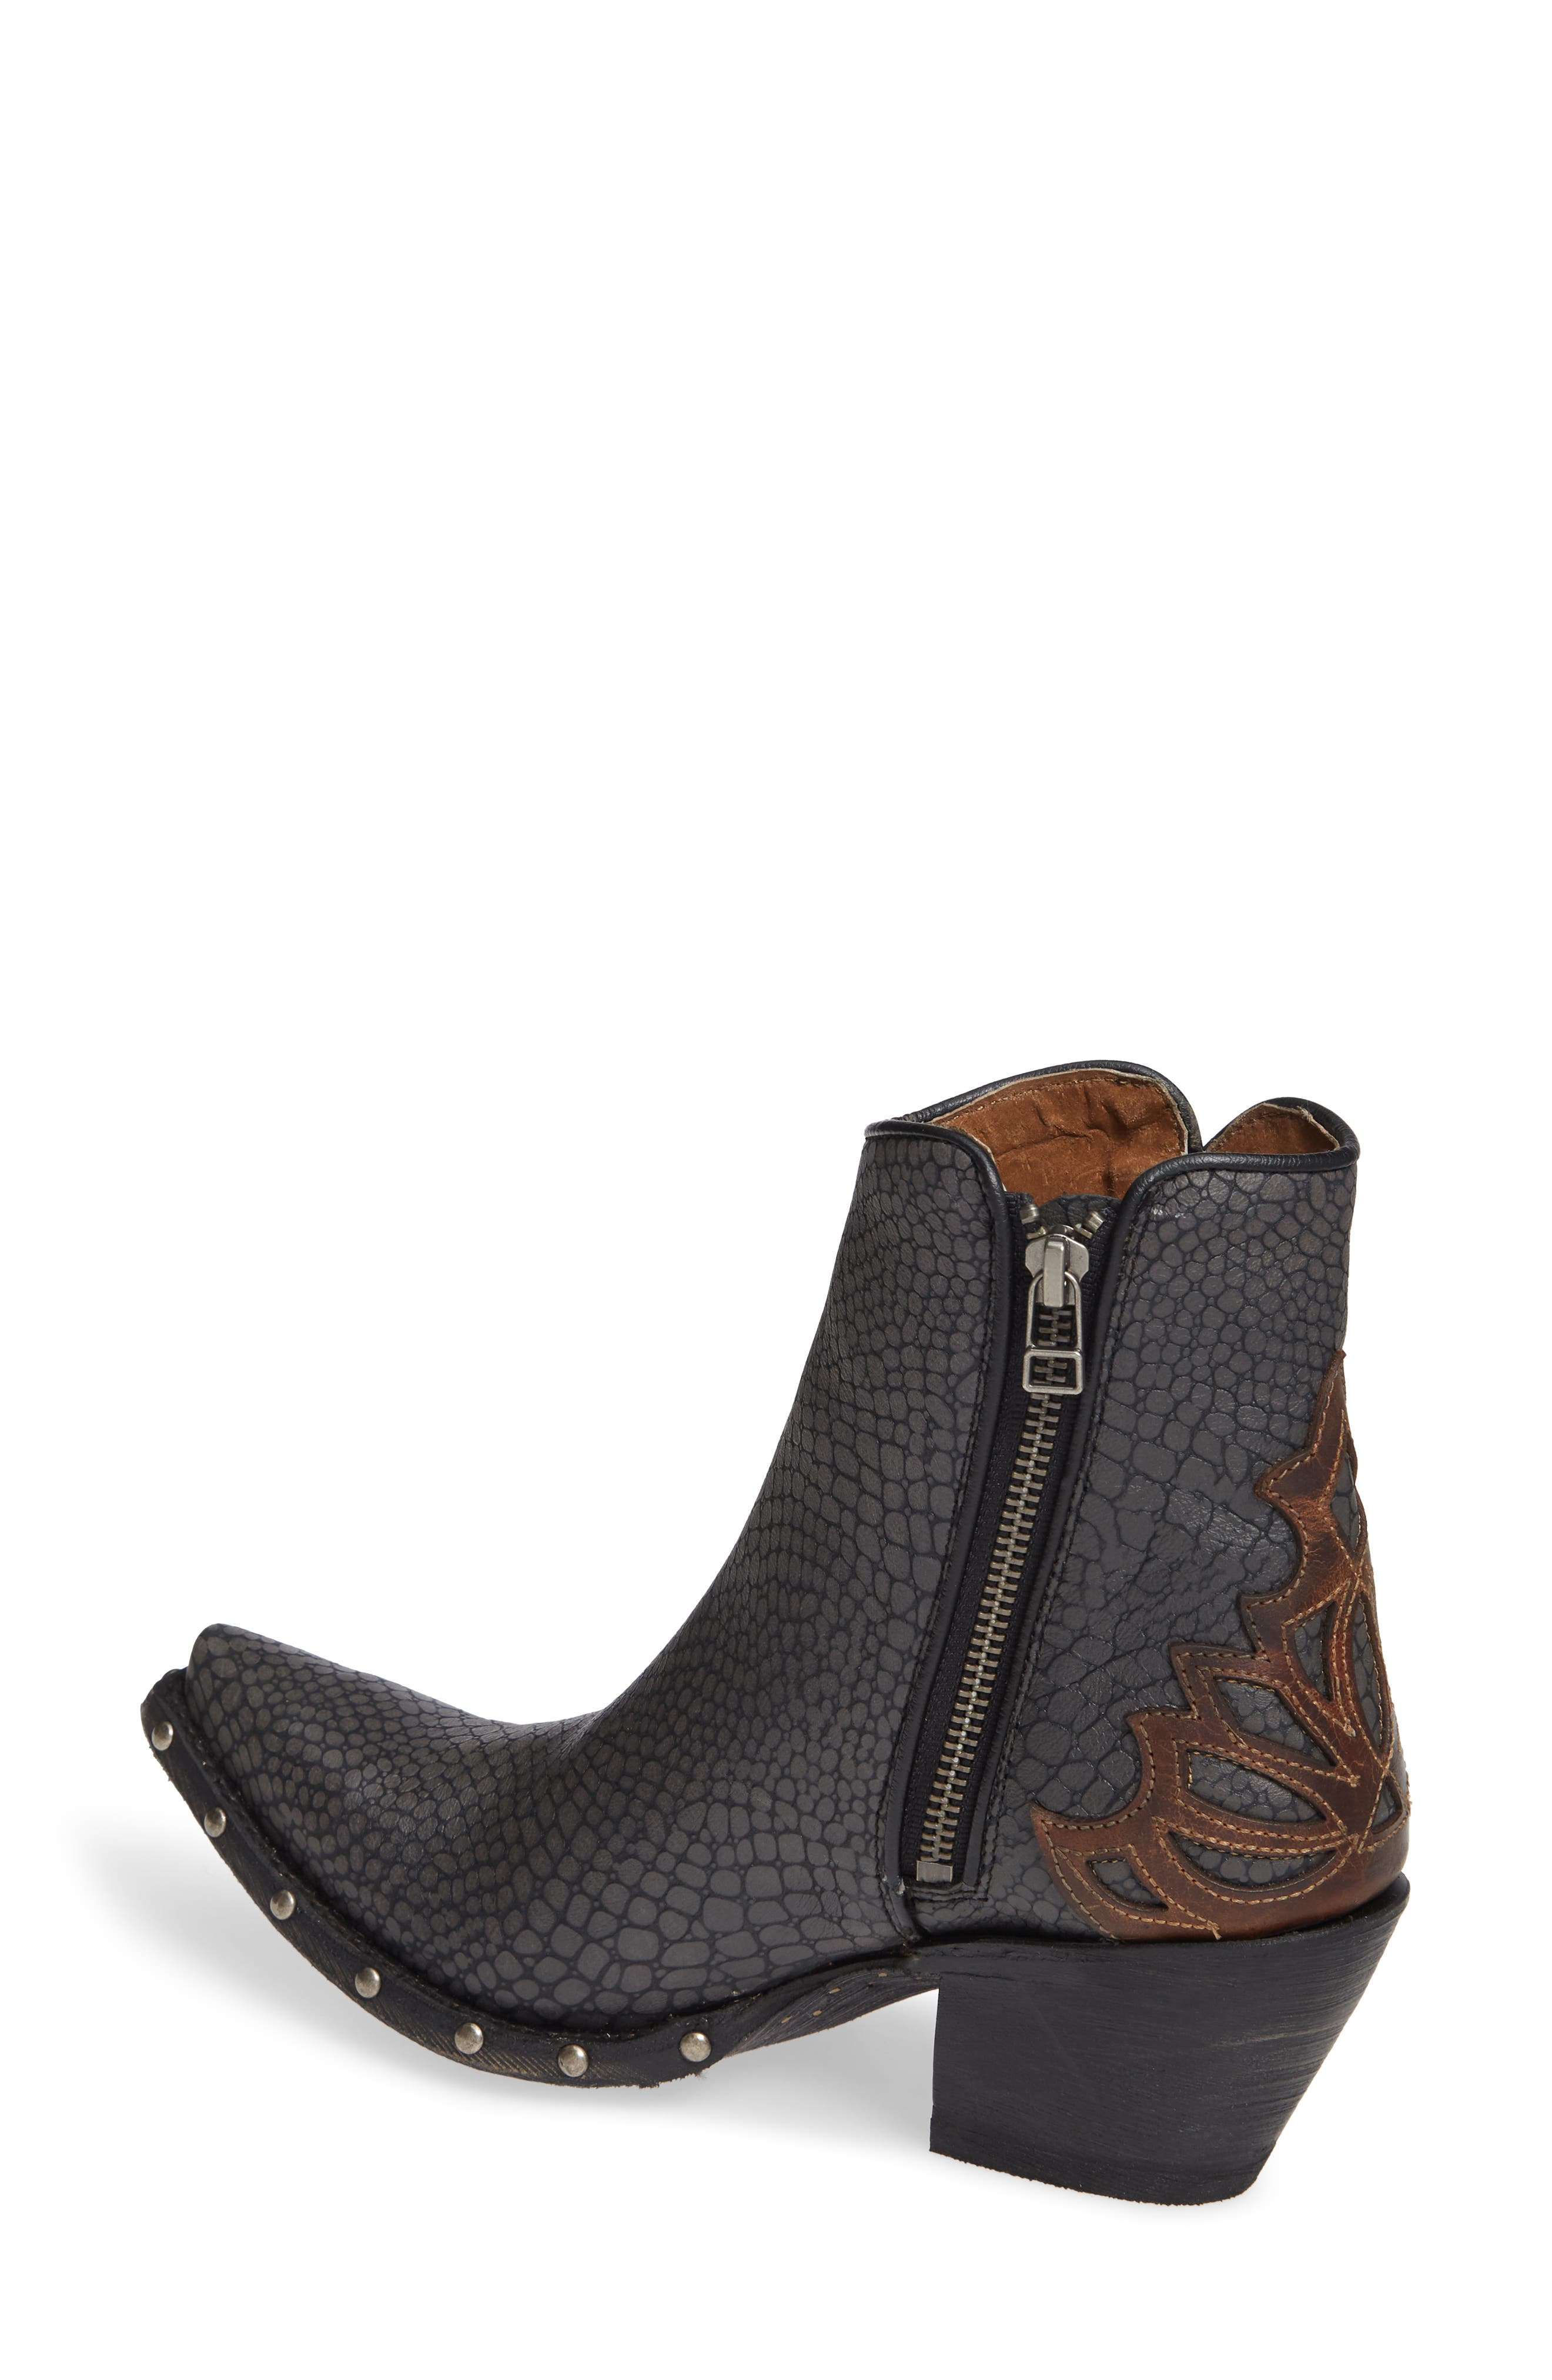 ARIAT, Fenix Western Bootie, Alternate thumbnail 2, color, CHIC GREY CRACKLED TAN LEATHER